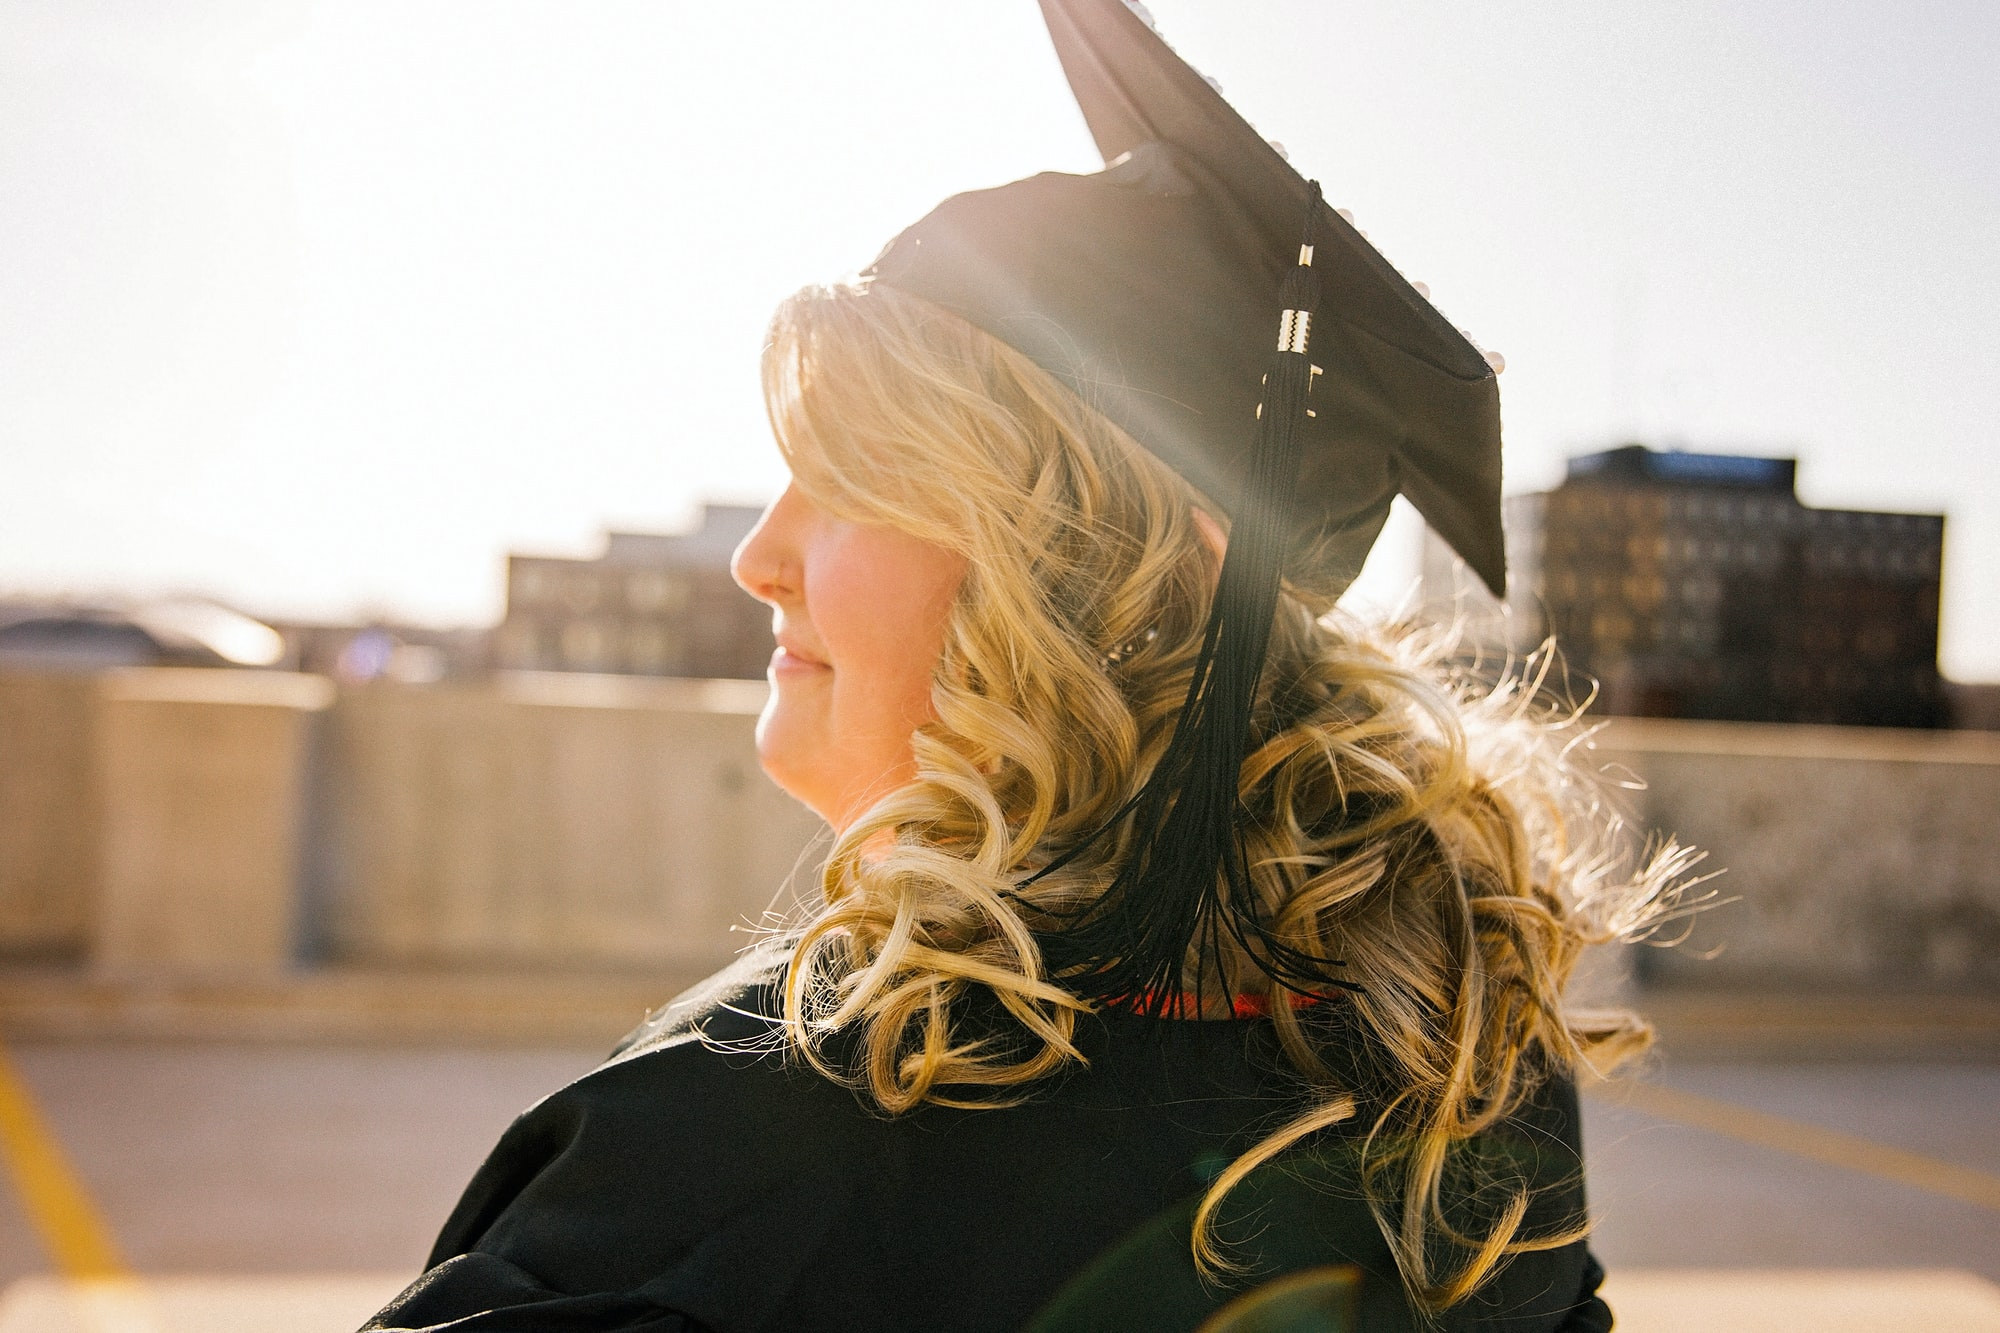 A student on her graduation day looking into the sunset.